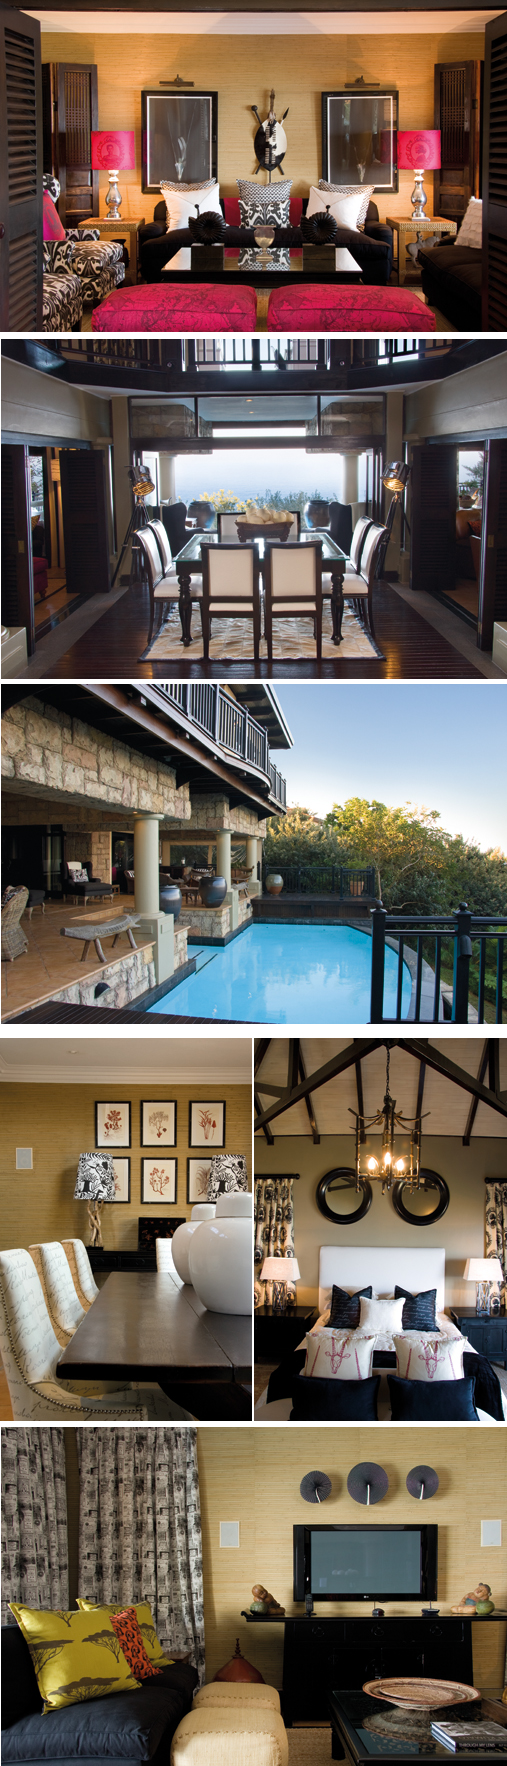 Zimbali location 19 Aug